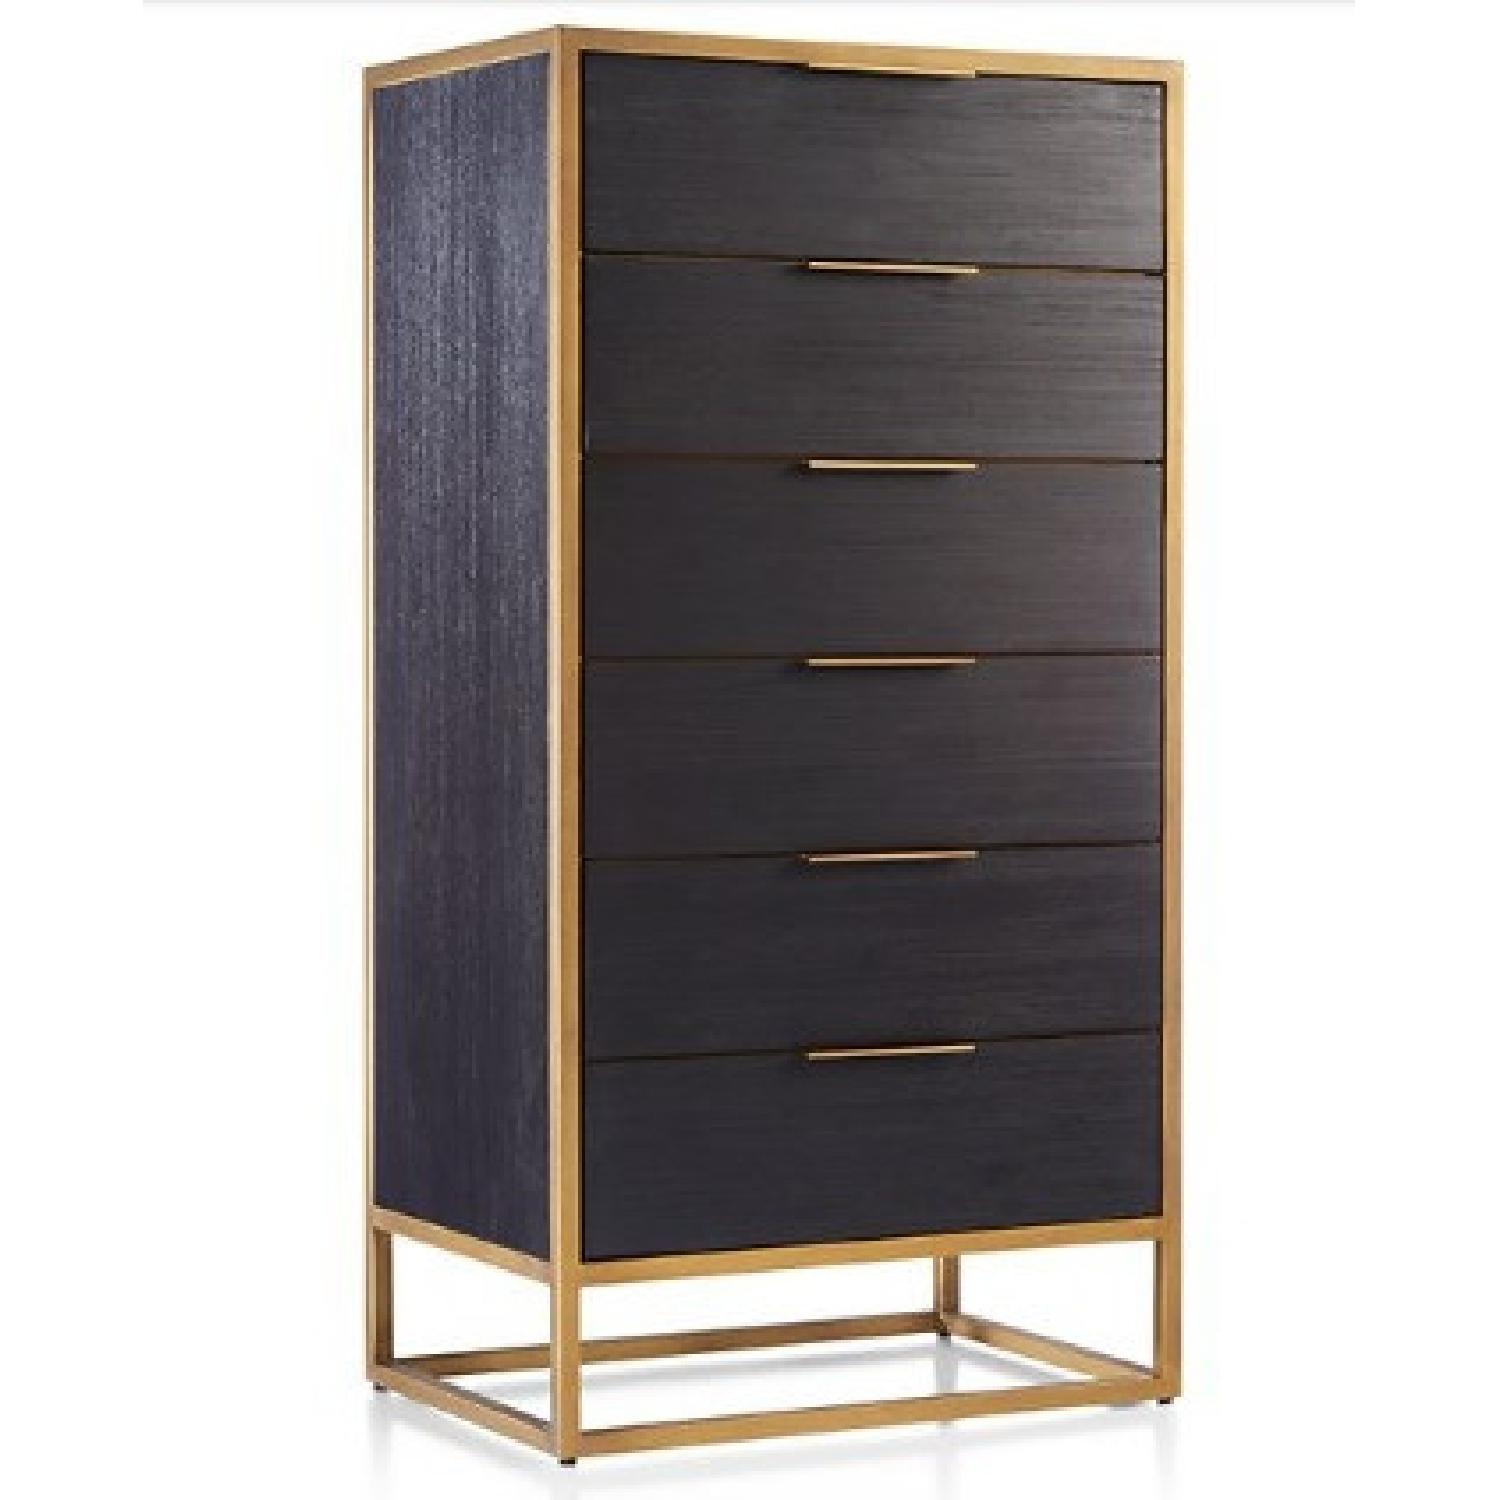 Crate & Barrel Oxford Black 6-Drawer Tall Chest - image-0